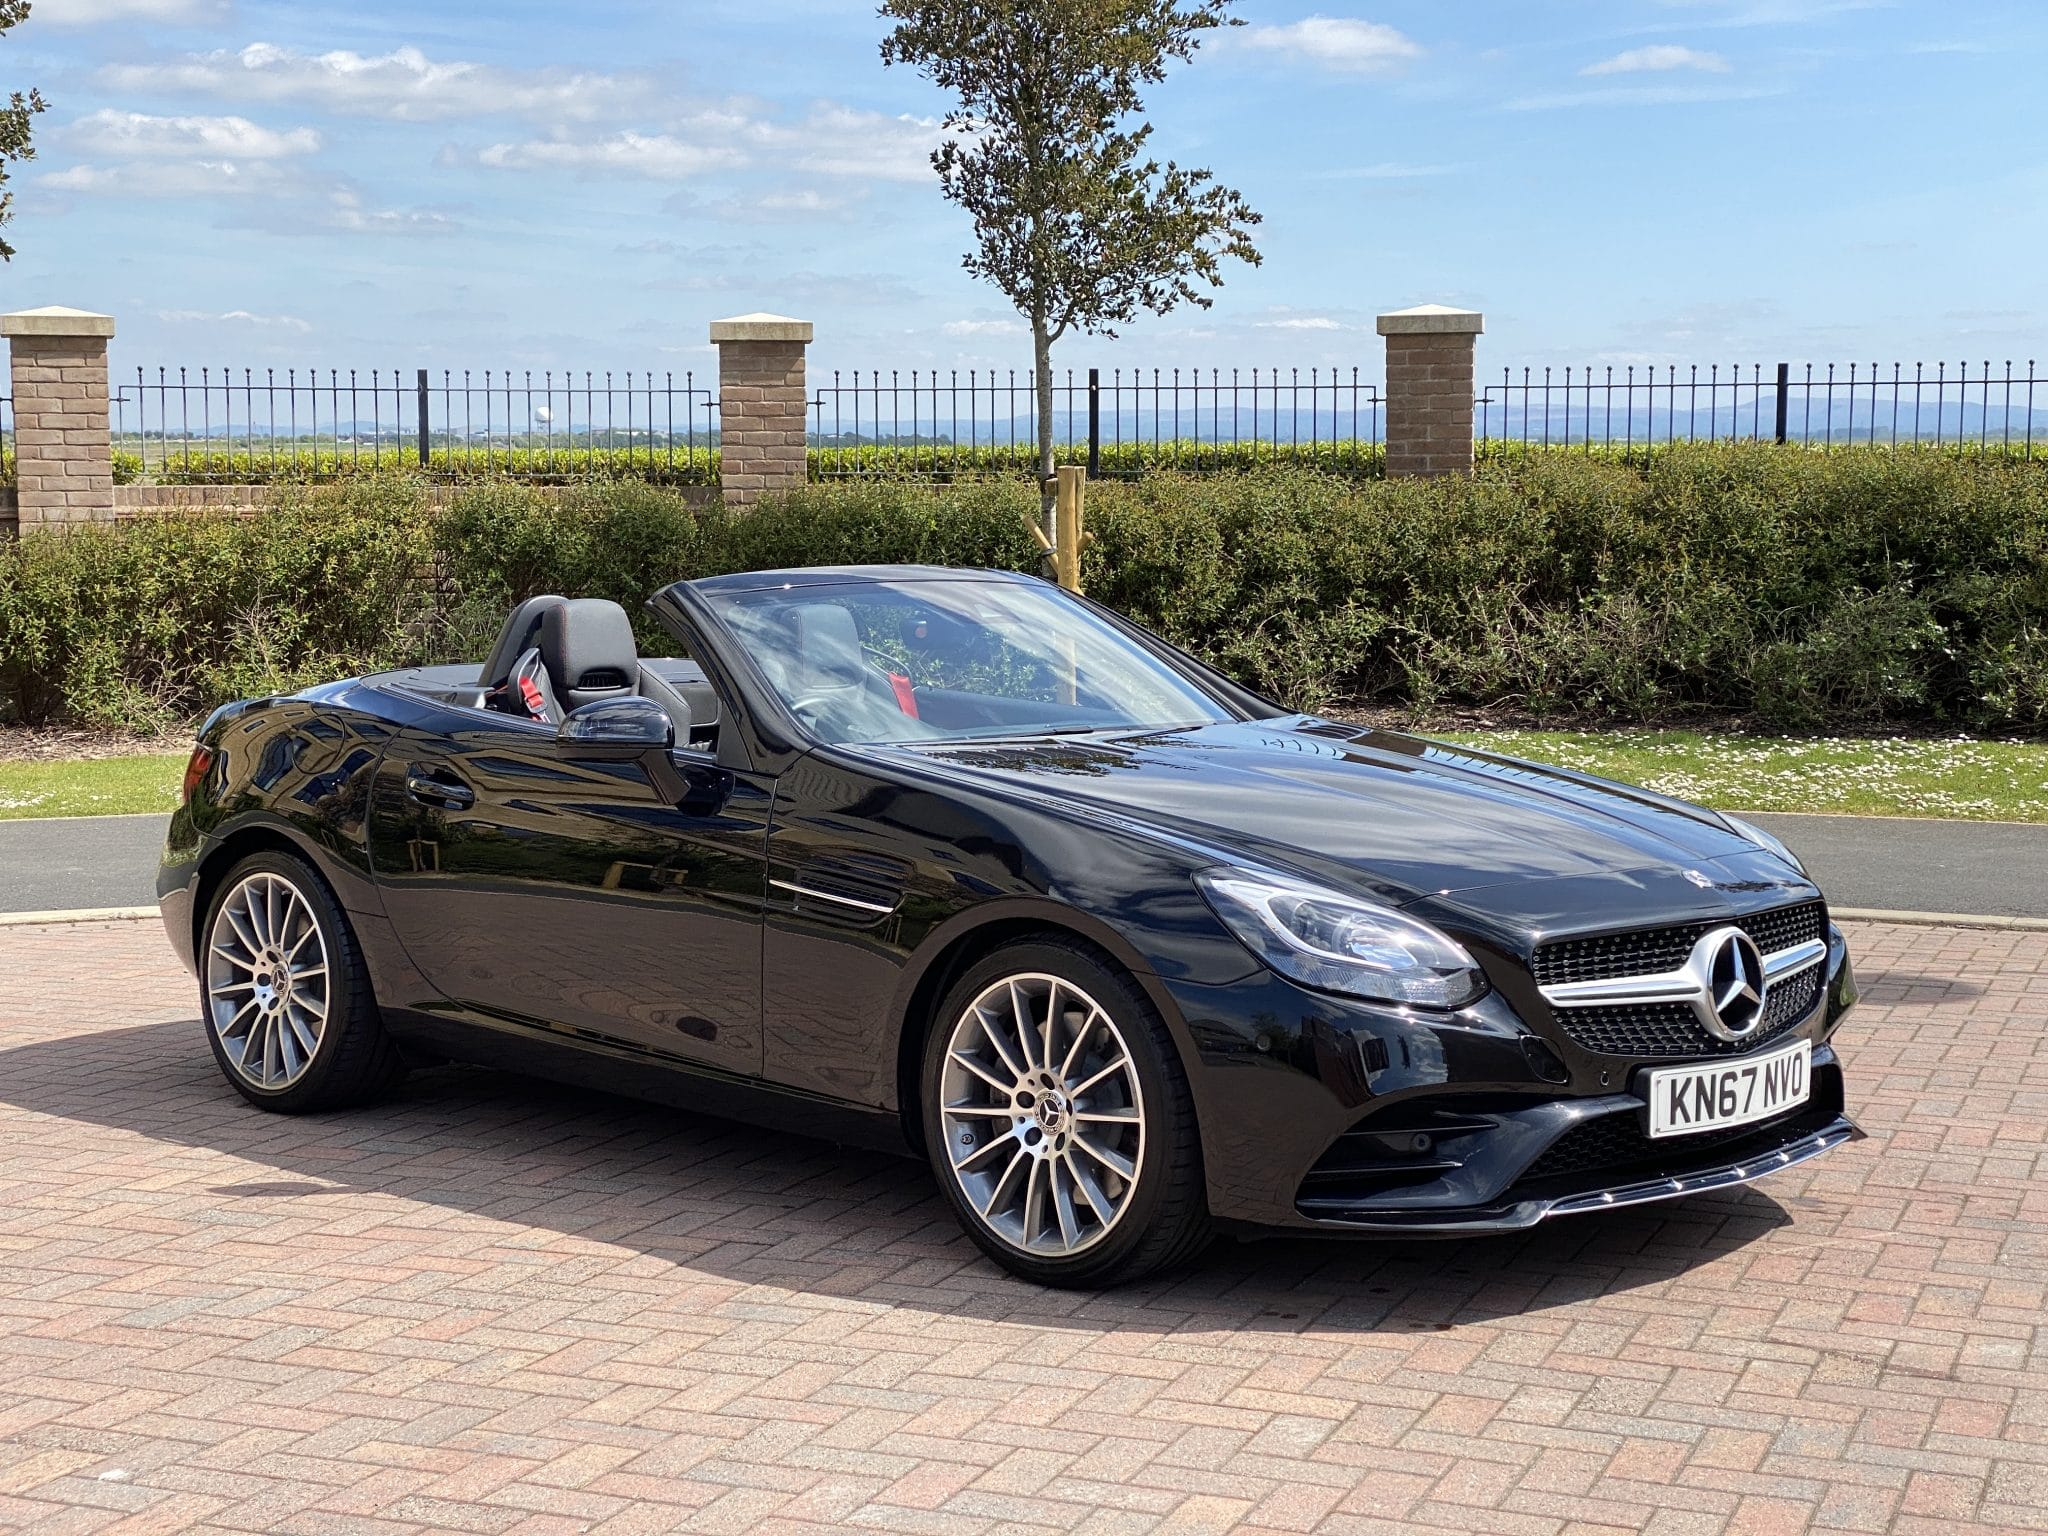 2017 67 MERCEDES SLC 250D AMG LINE ROADSTER 9 SPEED AUTO 1 Owner High Spec ONLY 9K Mls